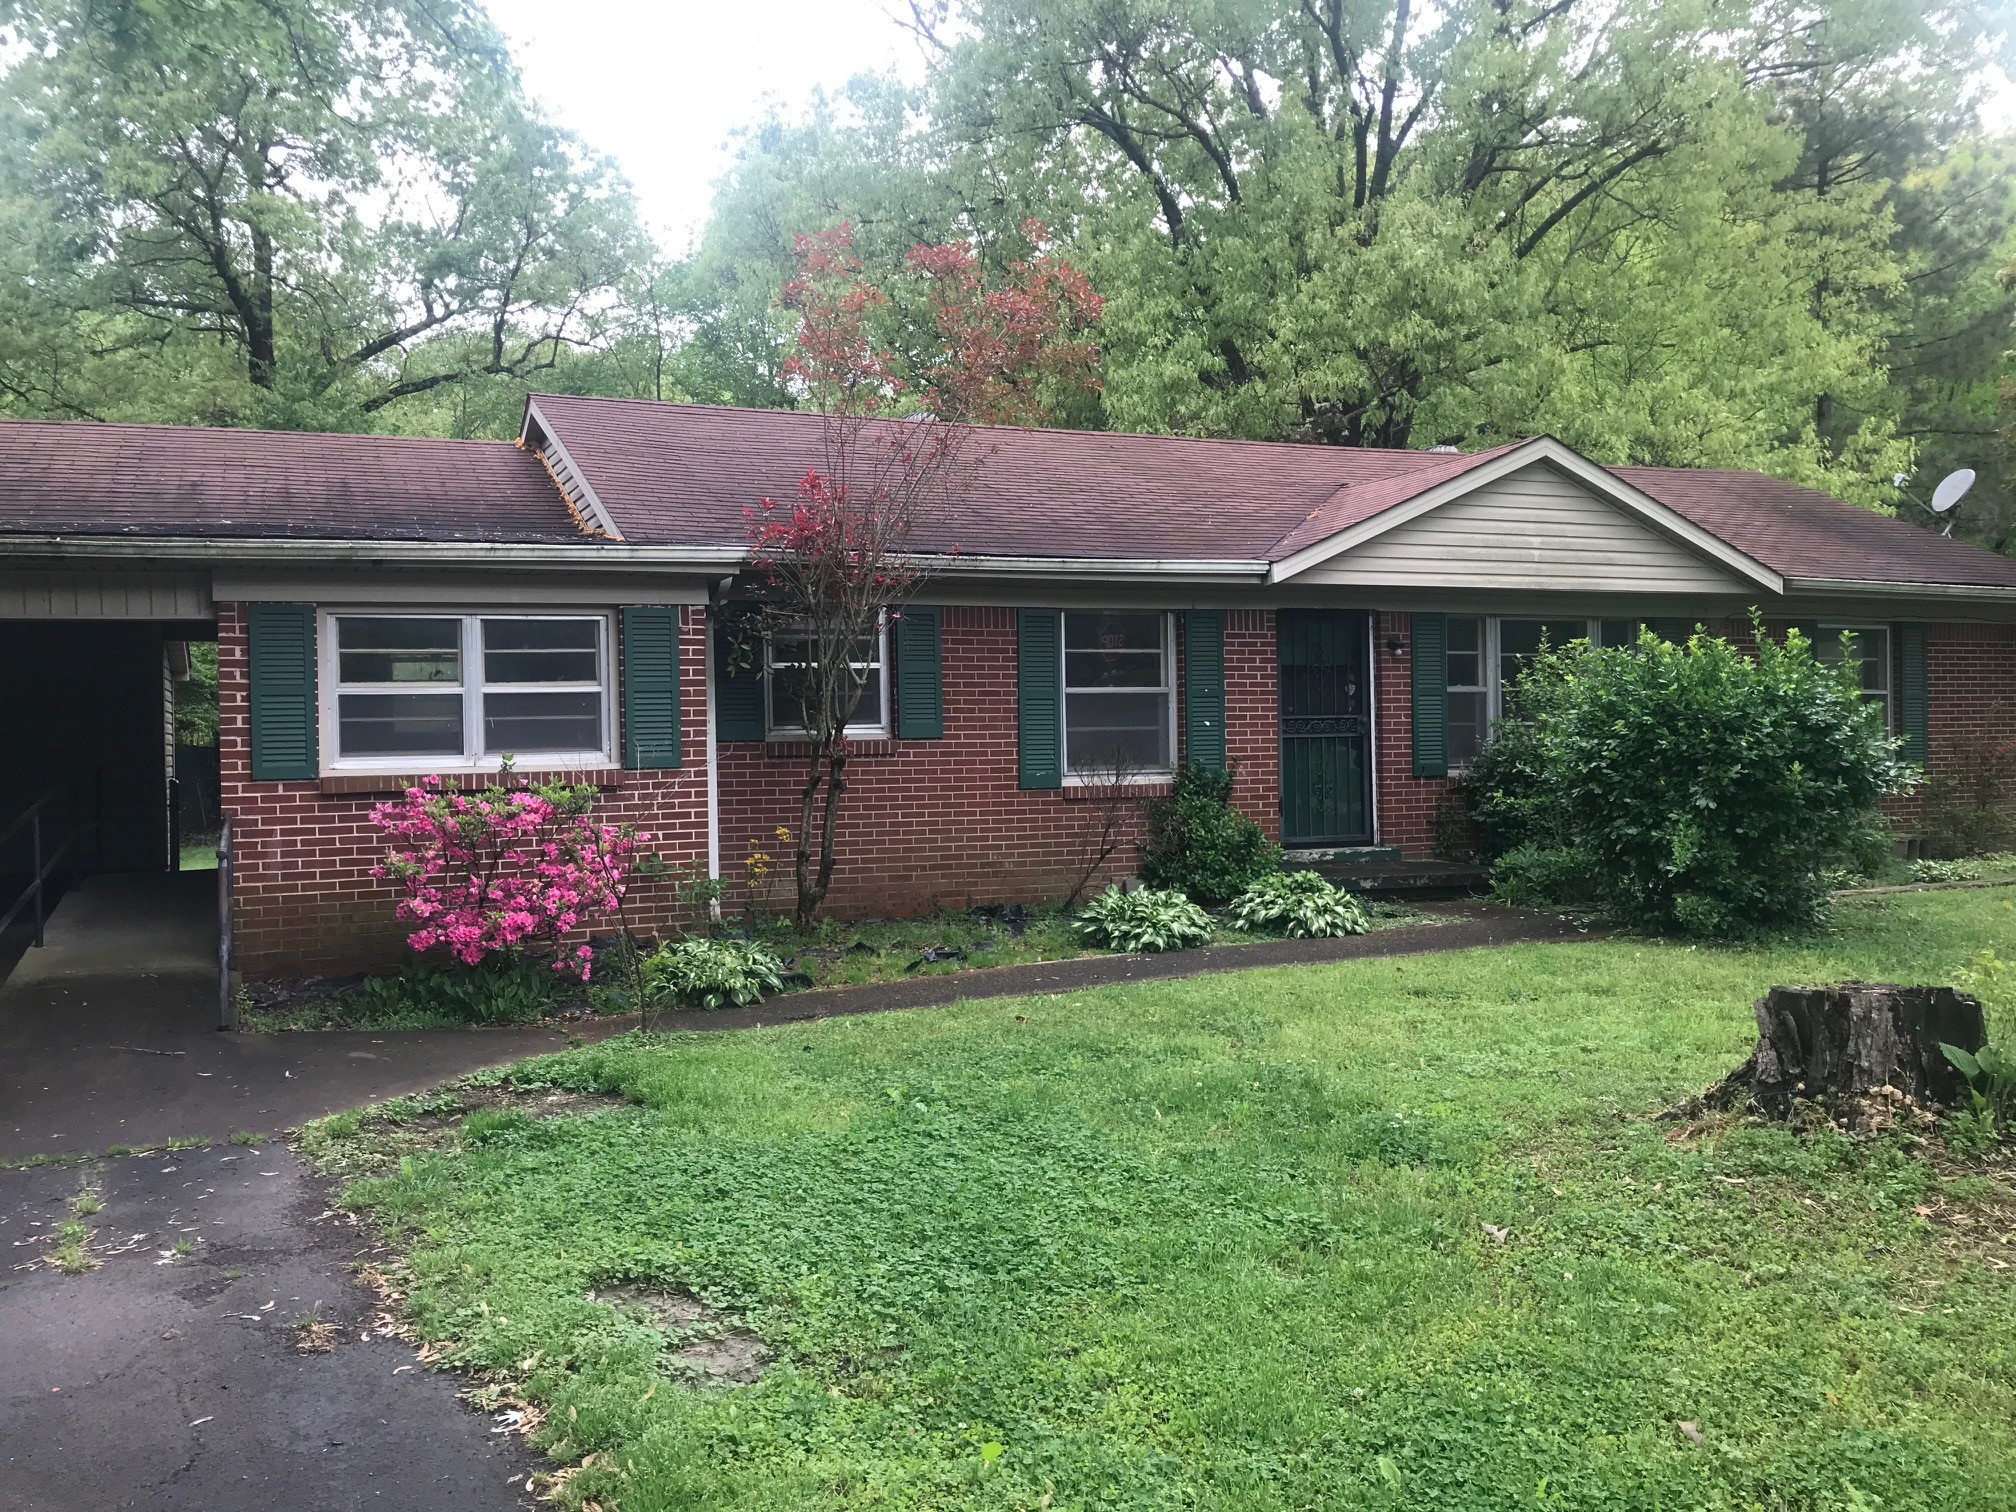 135 Sunset Ave, Camden, TN 38320 - Camden, TN real estate listing